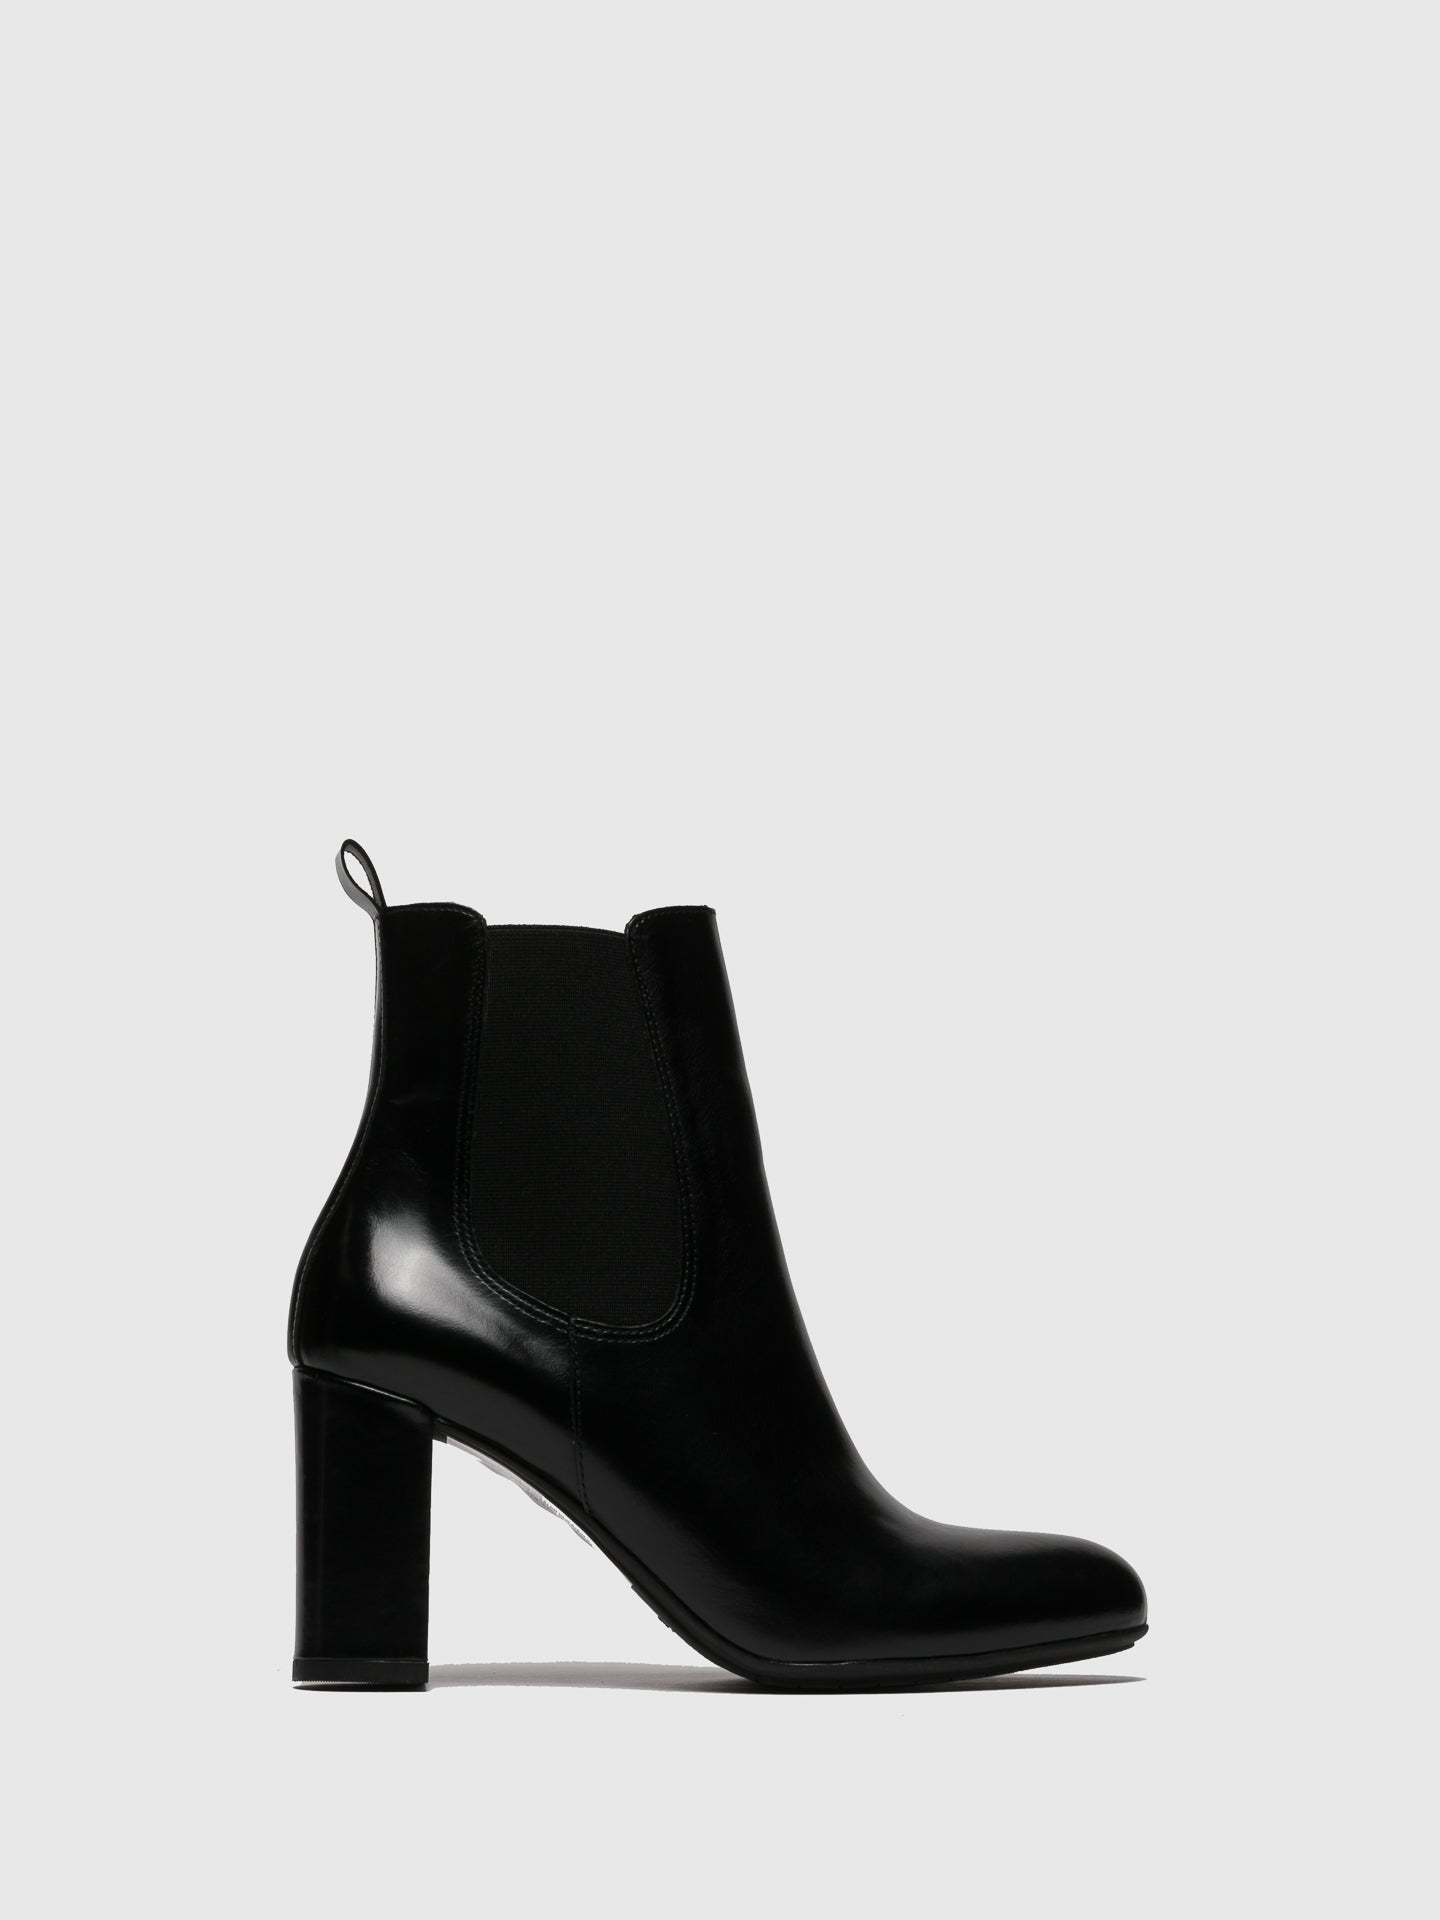 Only2me Black Elasticated Ankle Boots